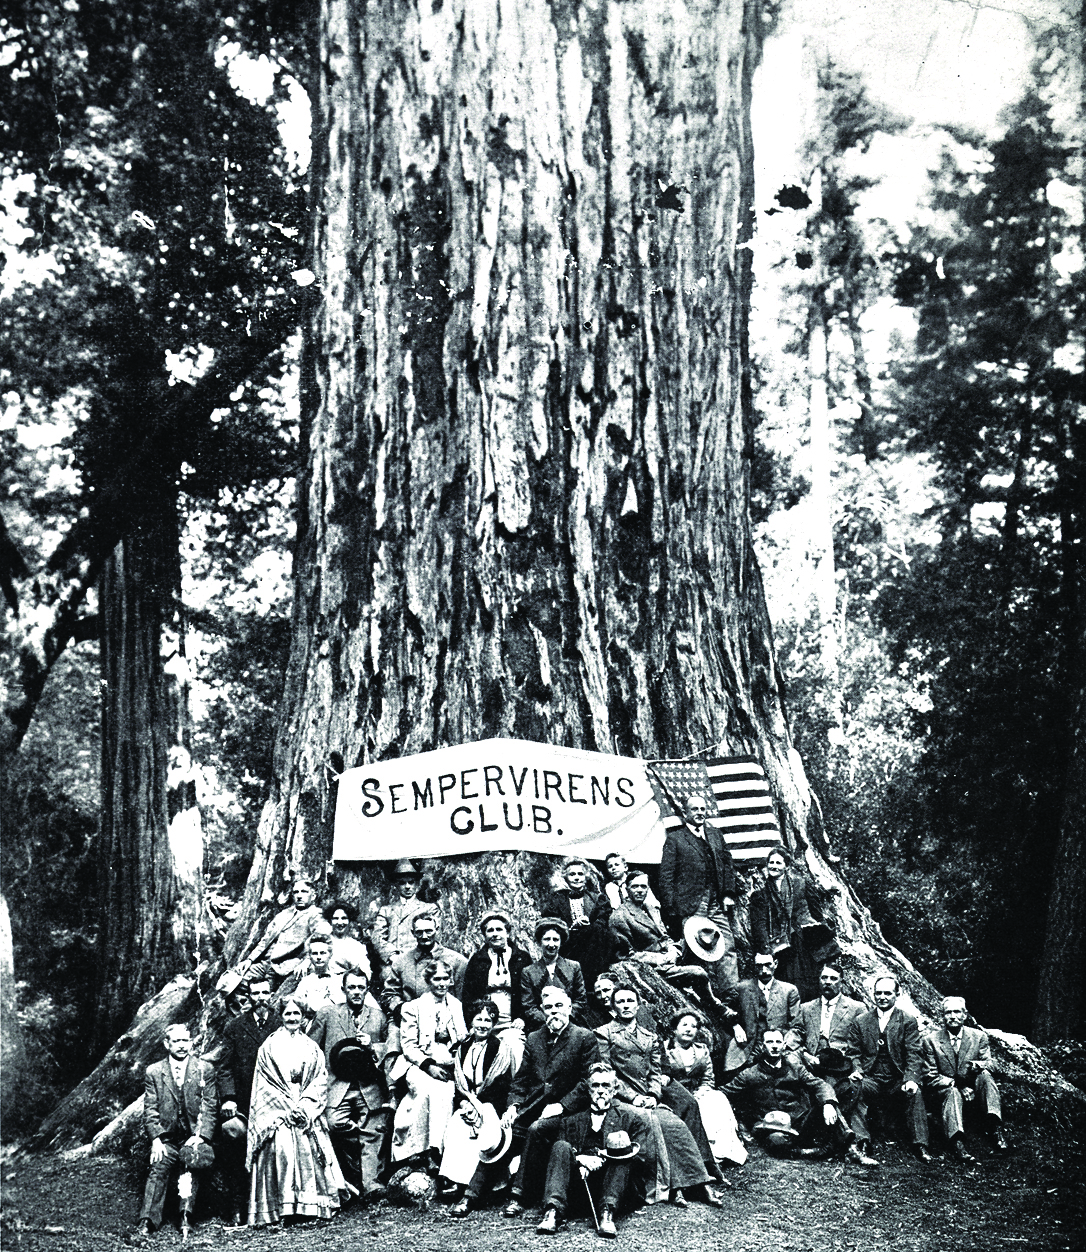 Sempervirens Club Image